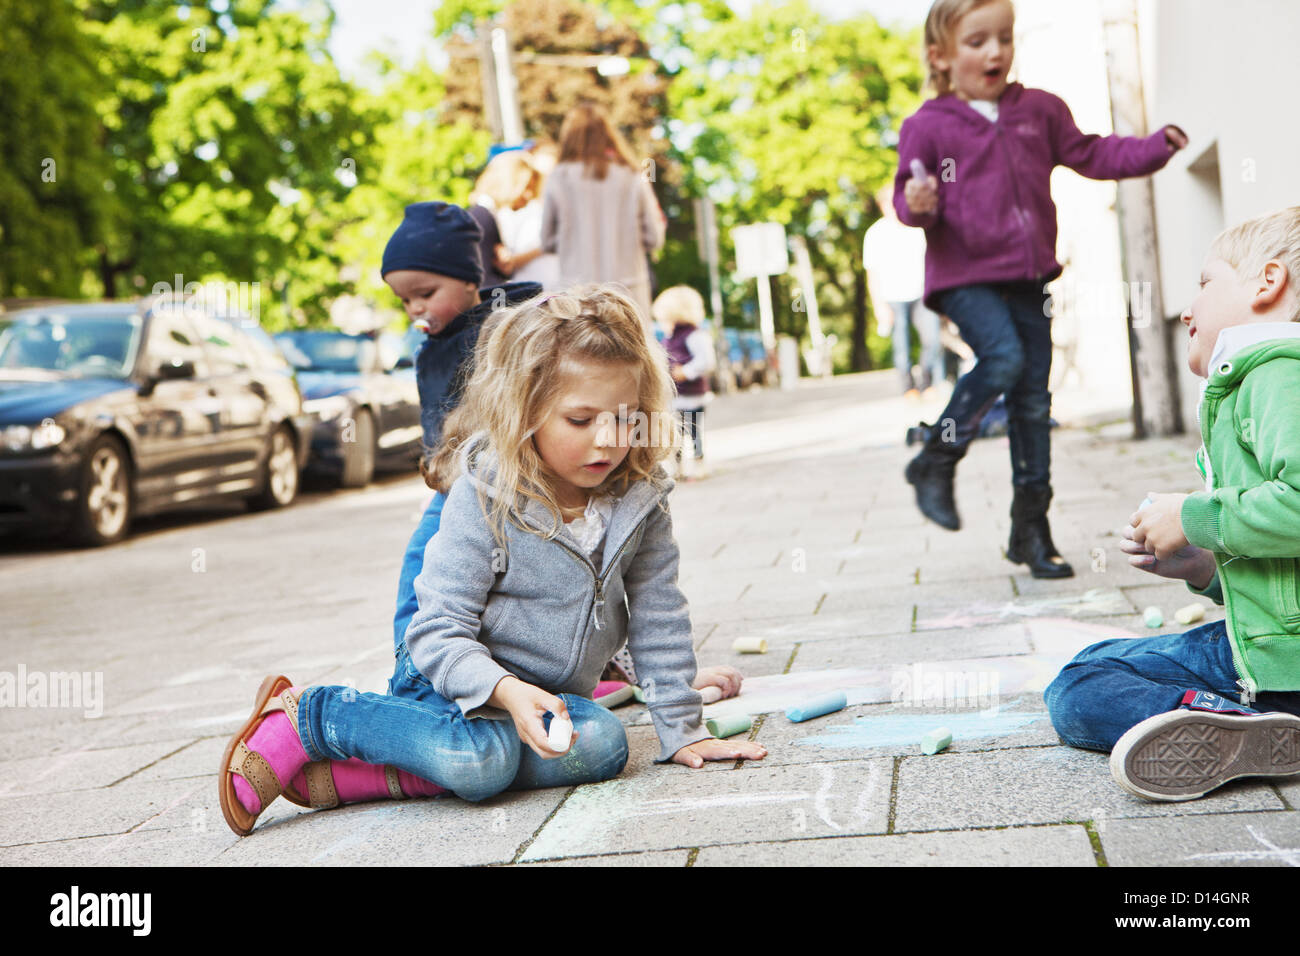 Children drawing on sidewalk with chalk - Stock Image